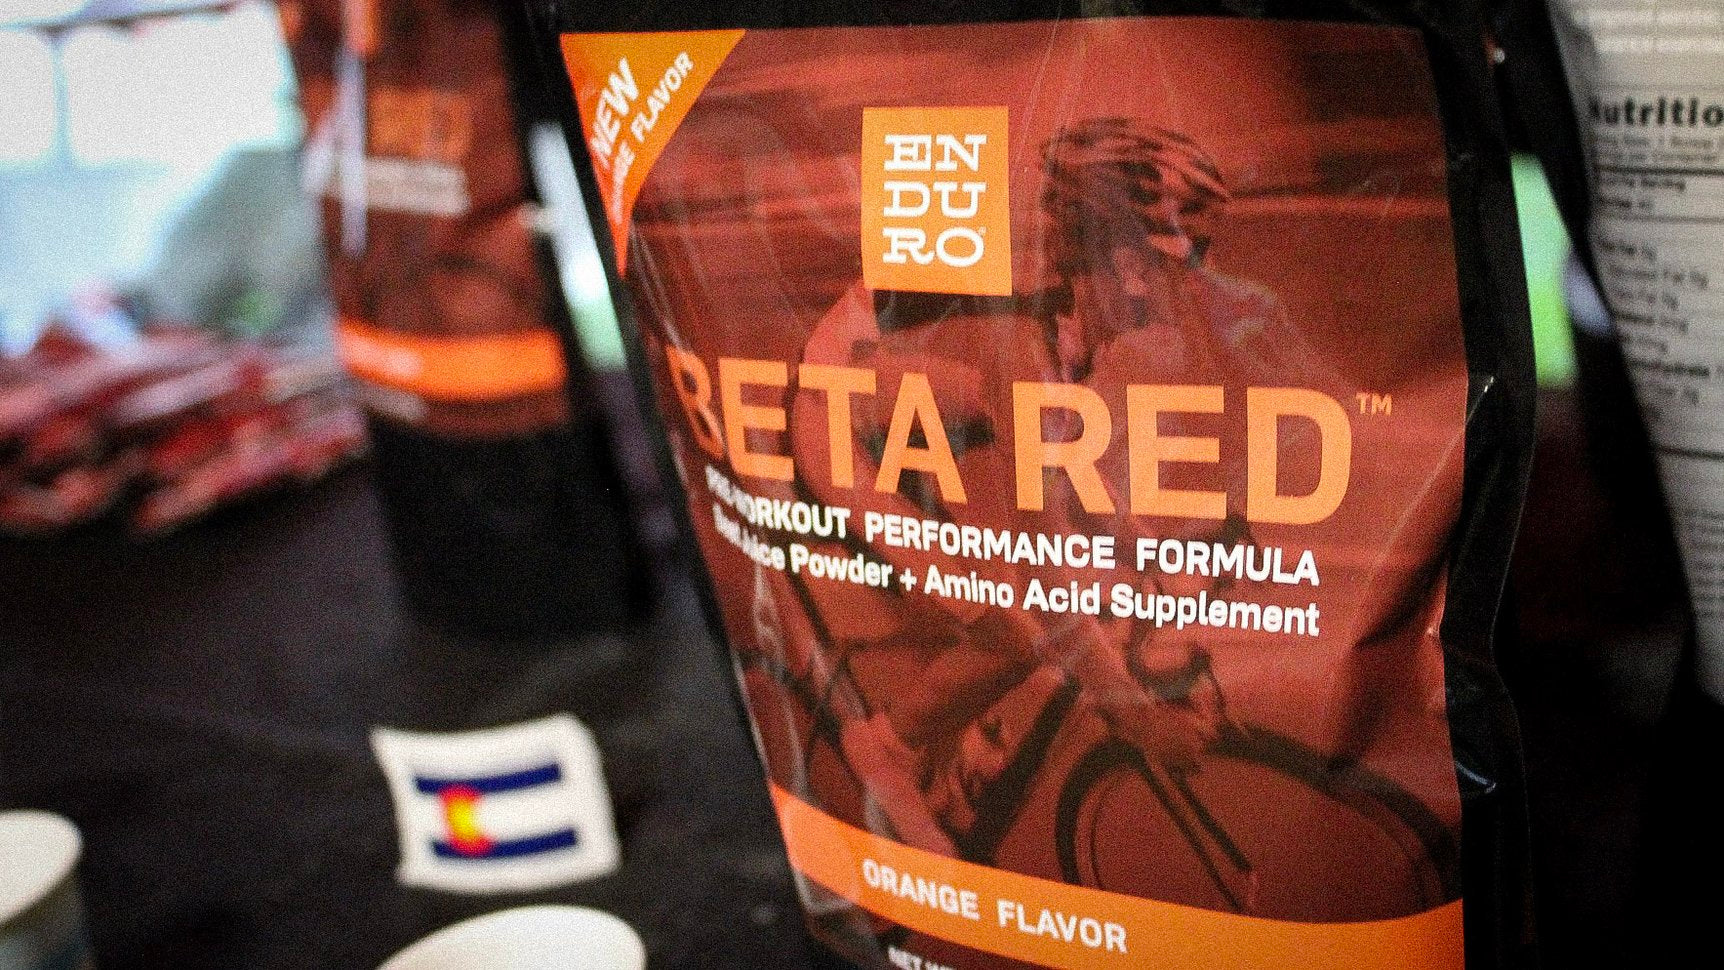 Beta Red Pre-Workout Performance Formula